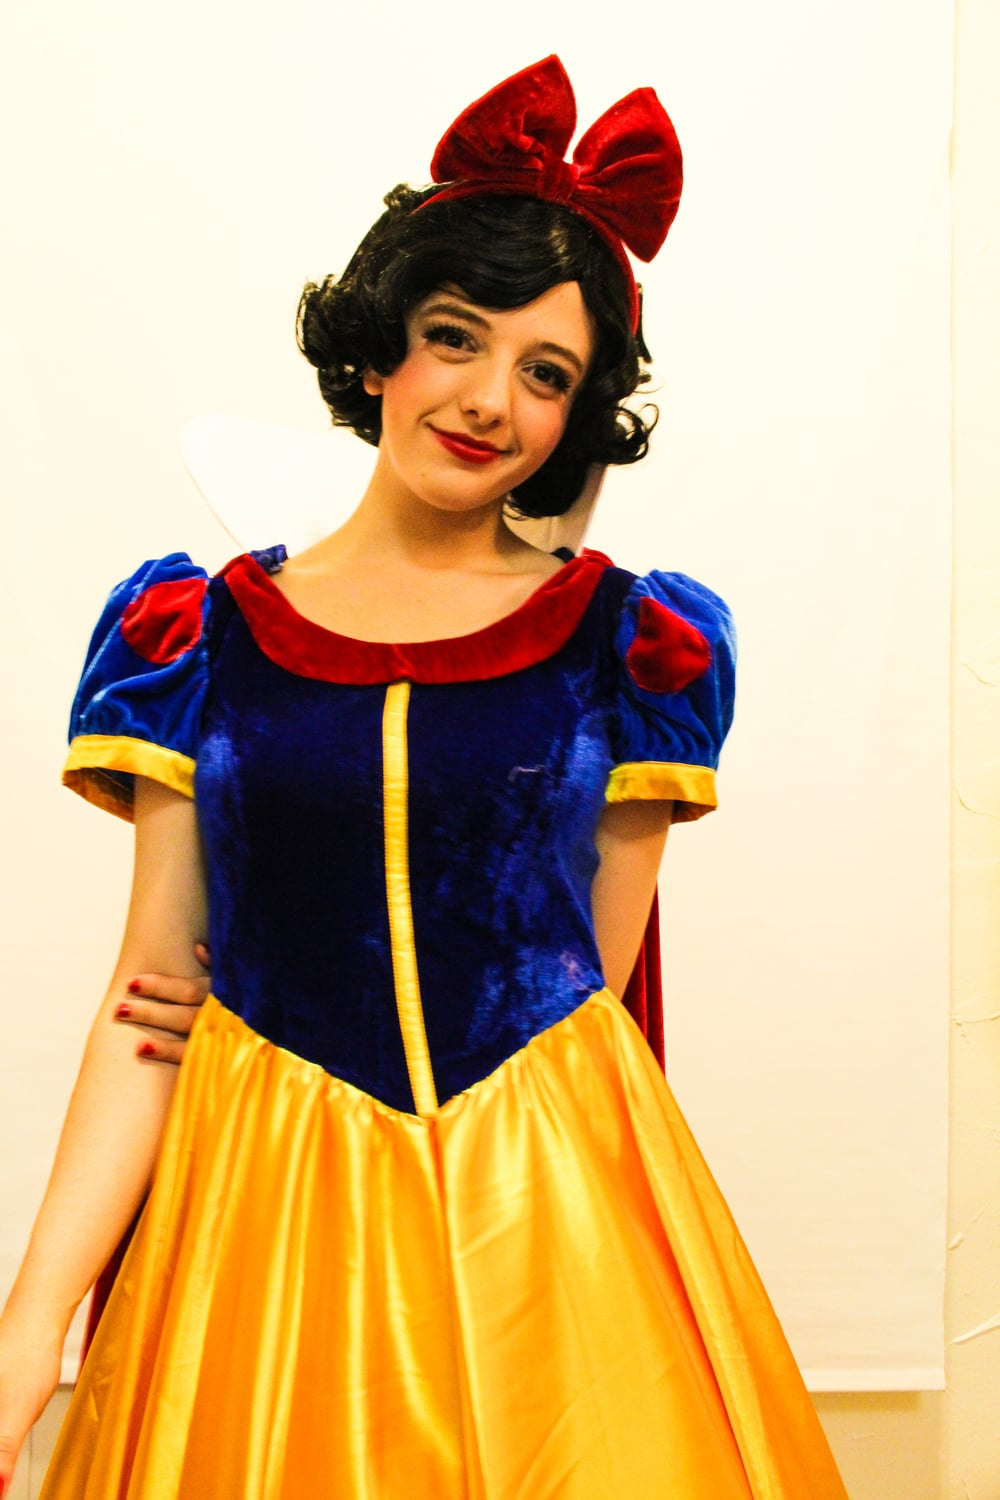 princess Snow white edited 2.jpg